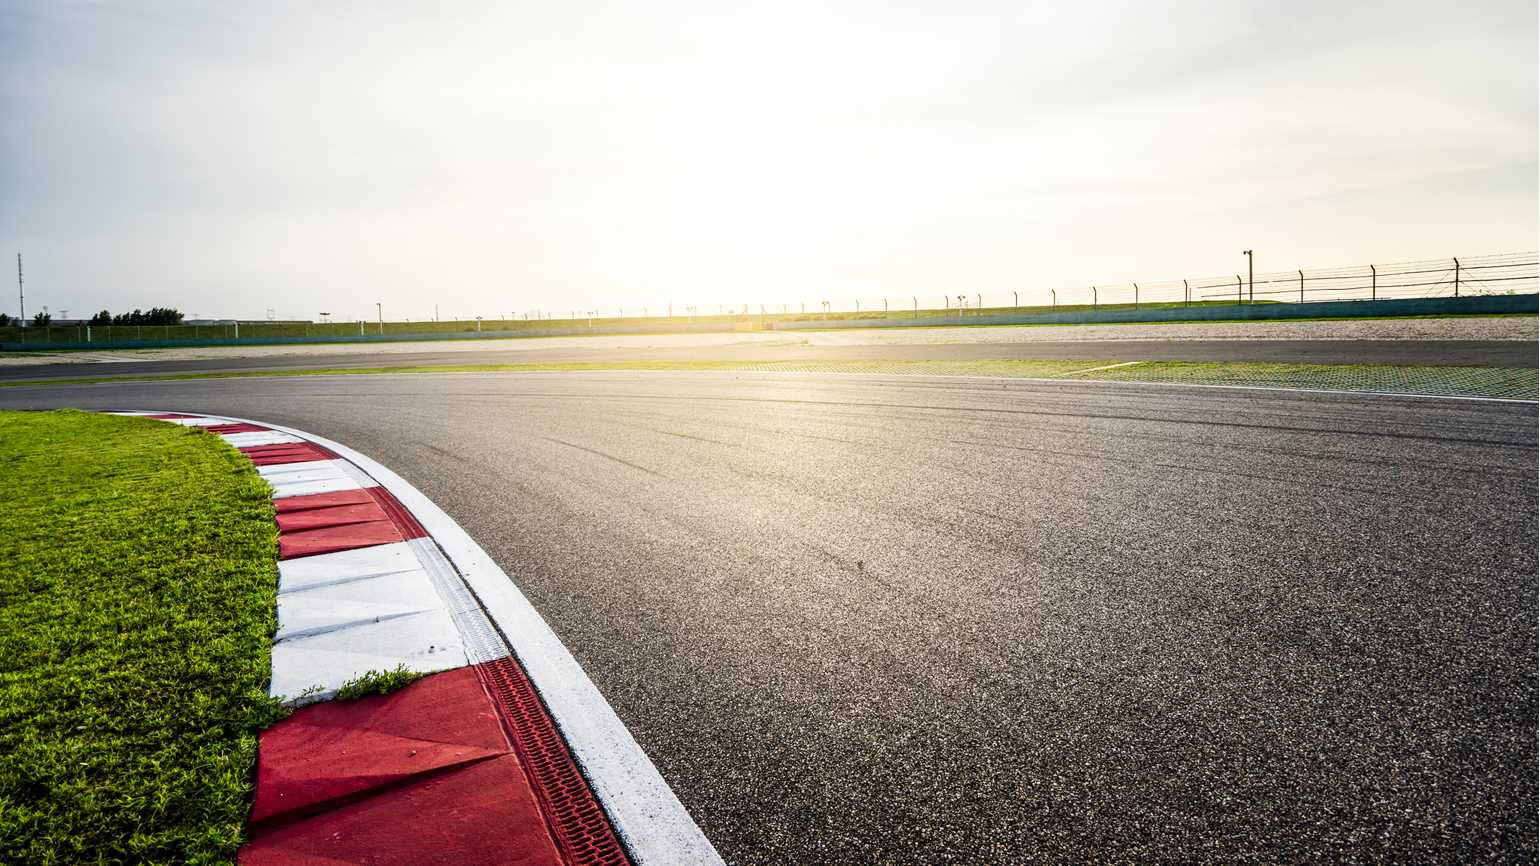 A close up on a car race track as brilliant sunlight pours through.